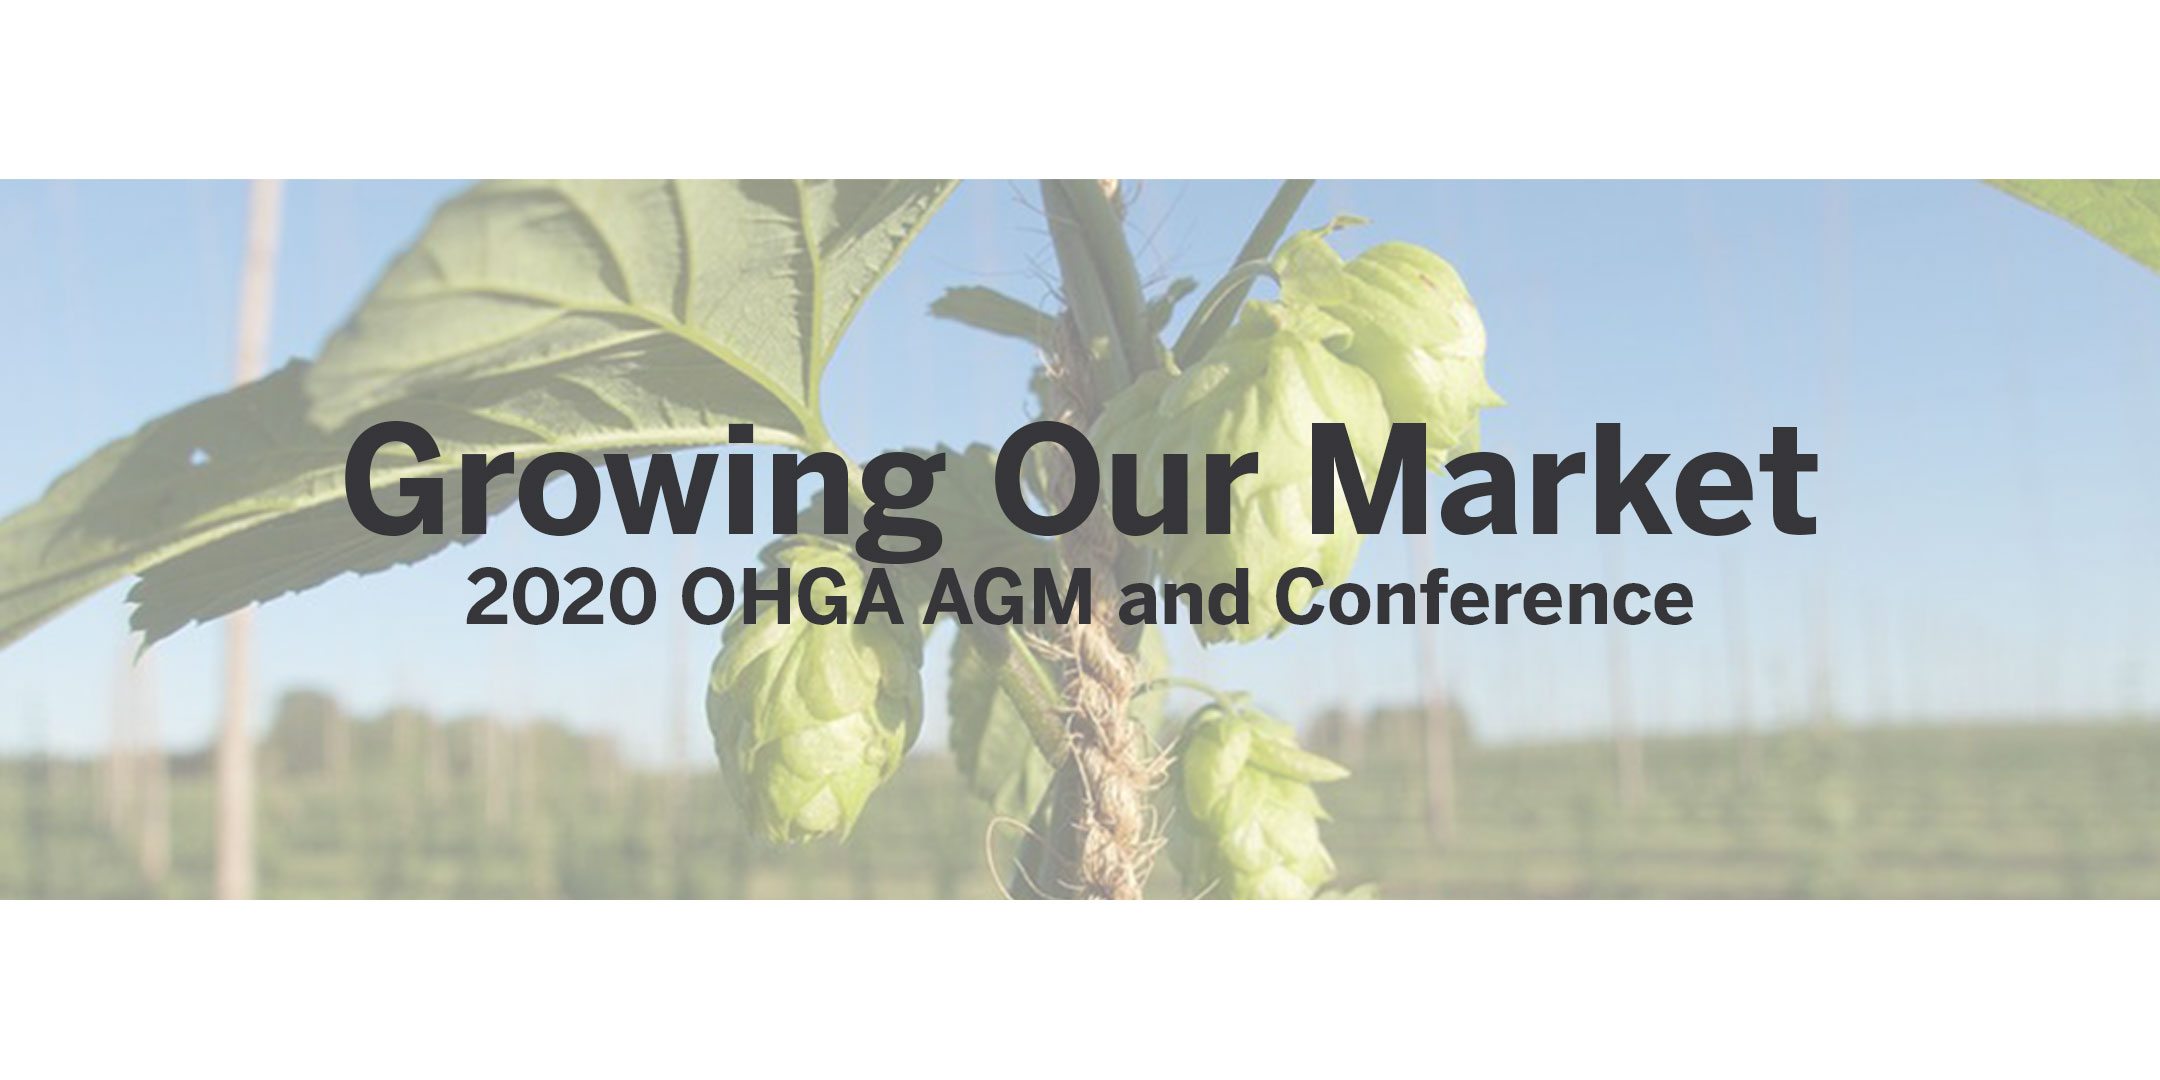 Growing Our Market - 2020 OHGA AGM